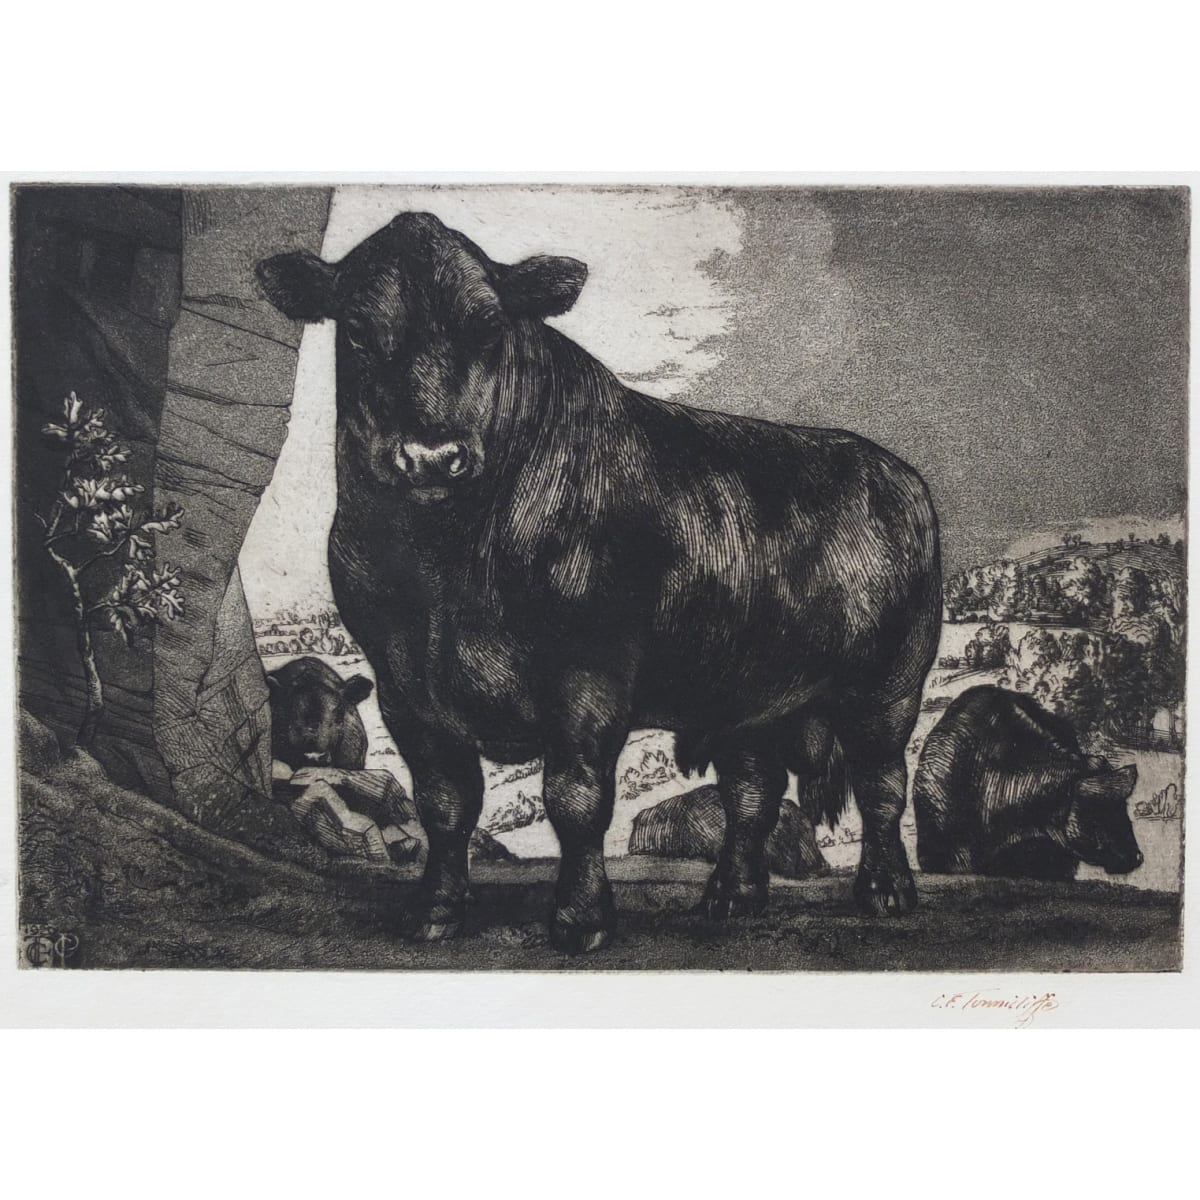 Charles Frederick Tunnicliffe Black Angus, 1929 monogrammed and dated 1929 in plate; signed in ink etching and aquatint plate size: 5 15/16 x 8 7/8 inches; sheet size: 5 5/8 x 11 inches